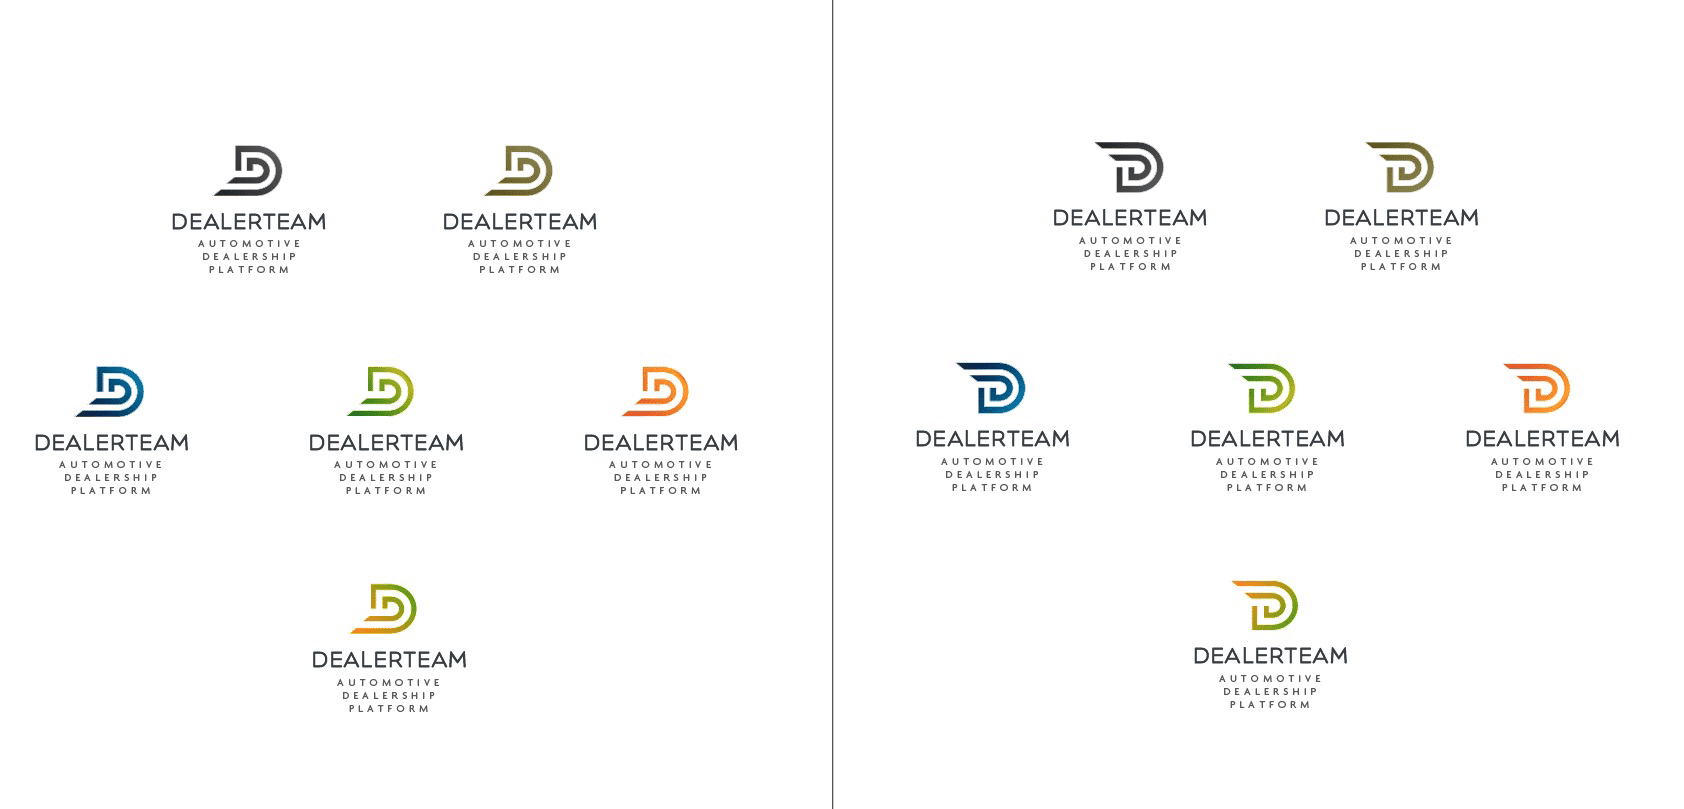 DealterTeam Automotive Dealership Logo Designed by The Logo Smith Freelance Logo Designer